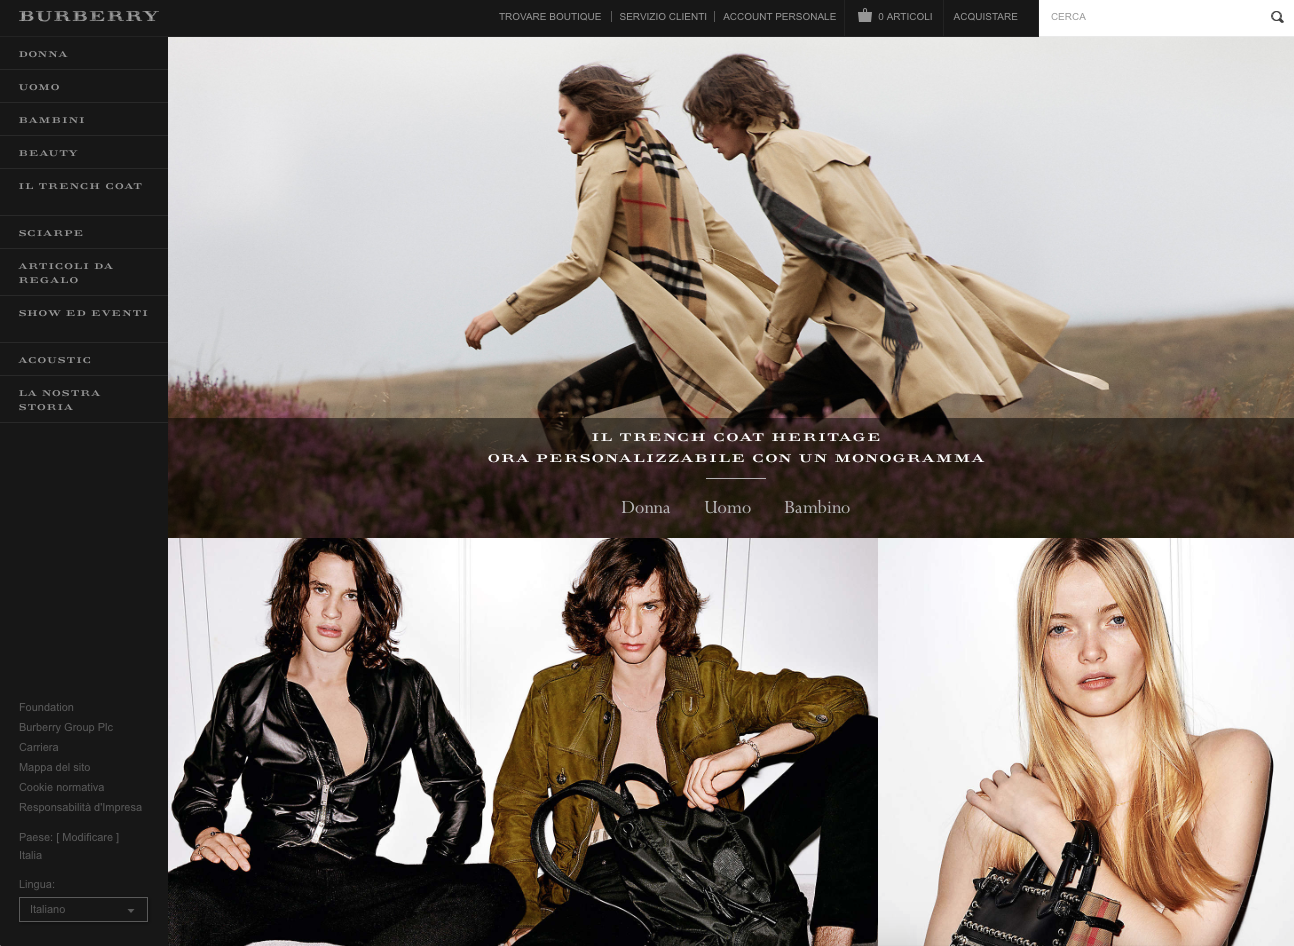 https://www.promotionmagazine.it/wp/wp-content/uploads/2016/04/Burberry.png